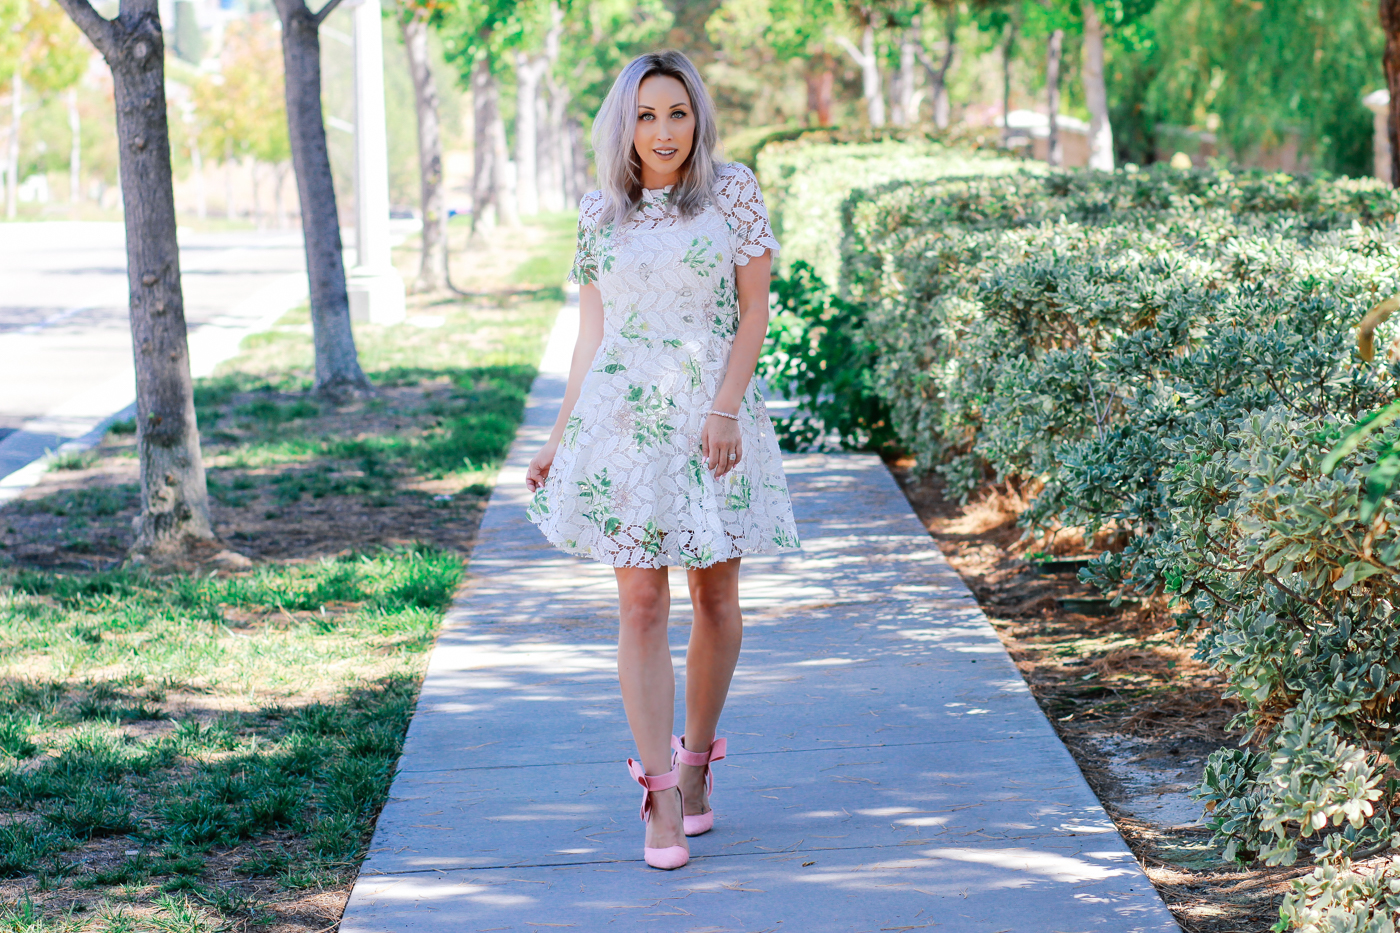 Blondie in the City | Summer Lace Dress from @chicwish | Handmade Dazzling Pastel Pink Glamour Bracelet from @Sweet-Charm-Elegance | Pink Bow Heels | Girly Street Style